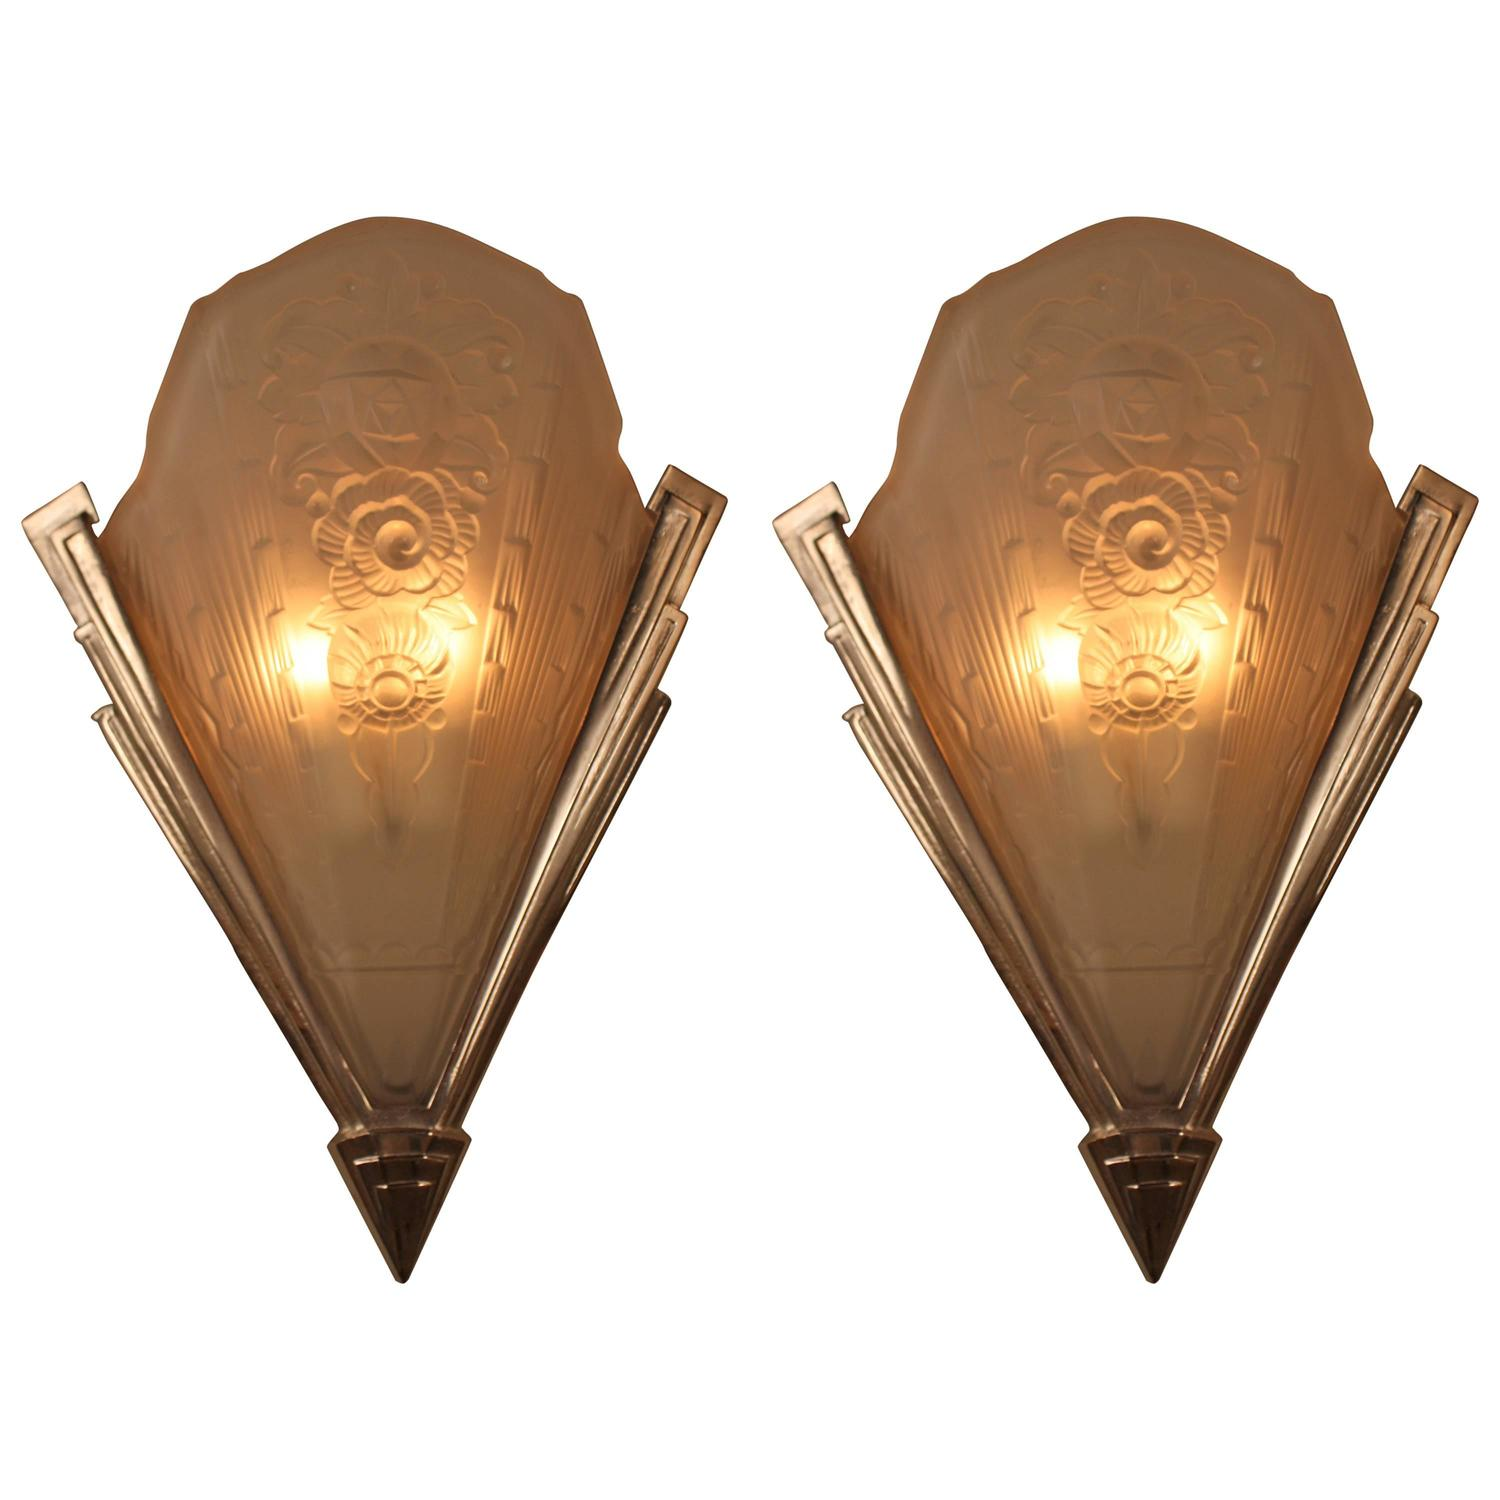 Large Art Deco Wall Sconces : Pair of Large French Art Deco Wall Sconces at 1stdibs